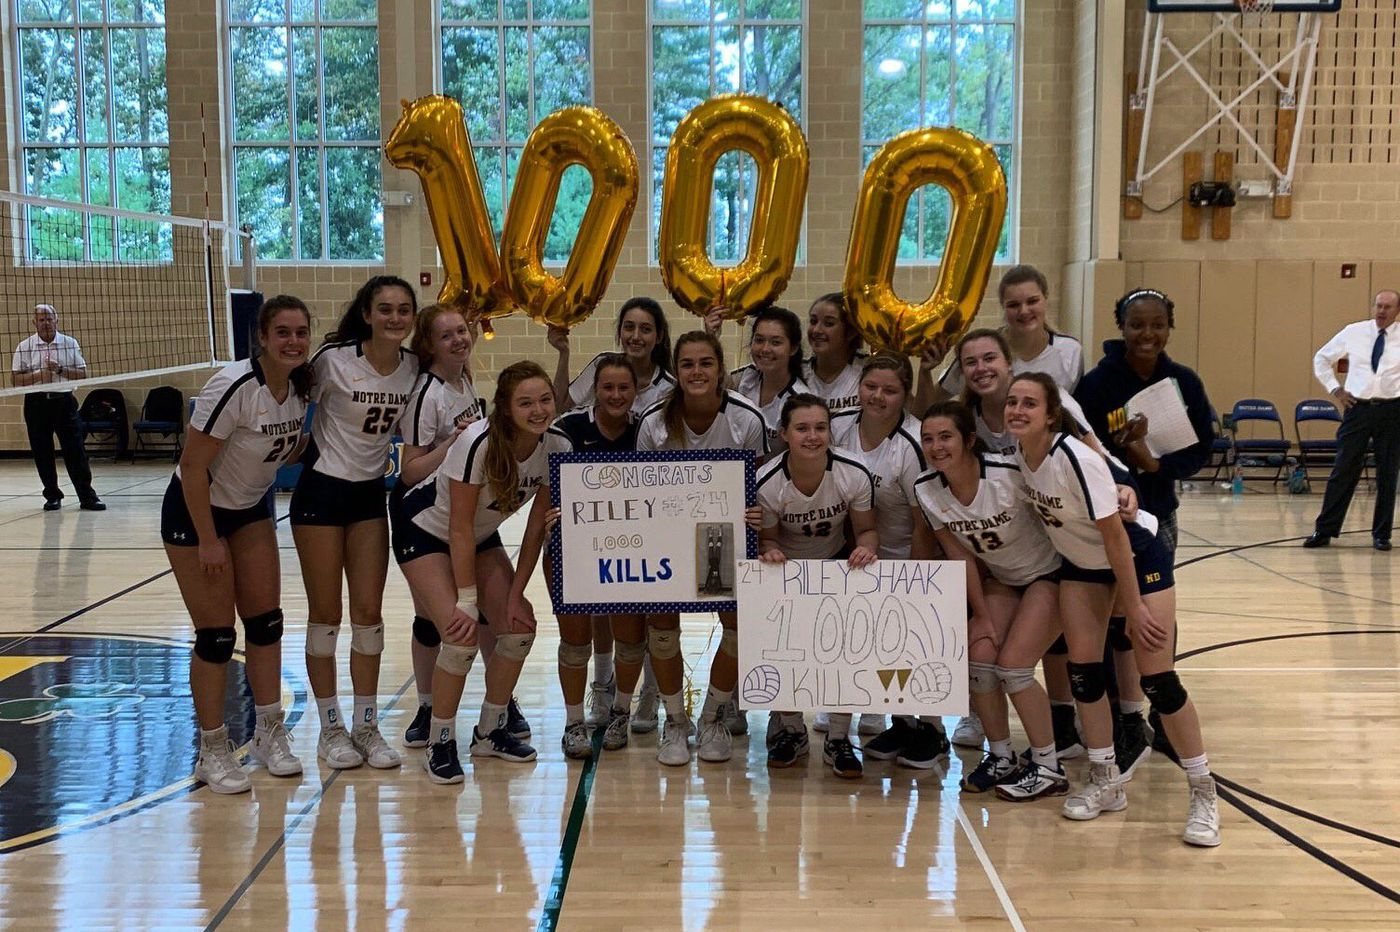 Wednesday's Southeastern Pa. roundup: Riley Shaak records 1,000th kill in Notre Dame Volleyball win